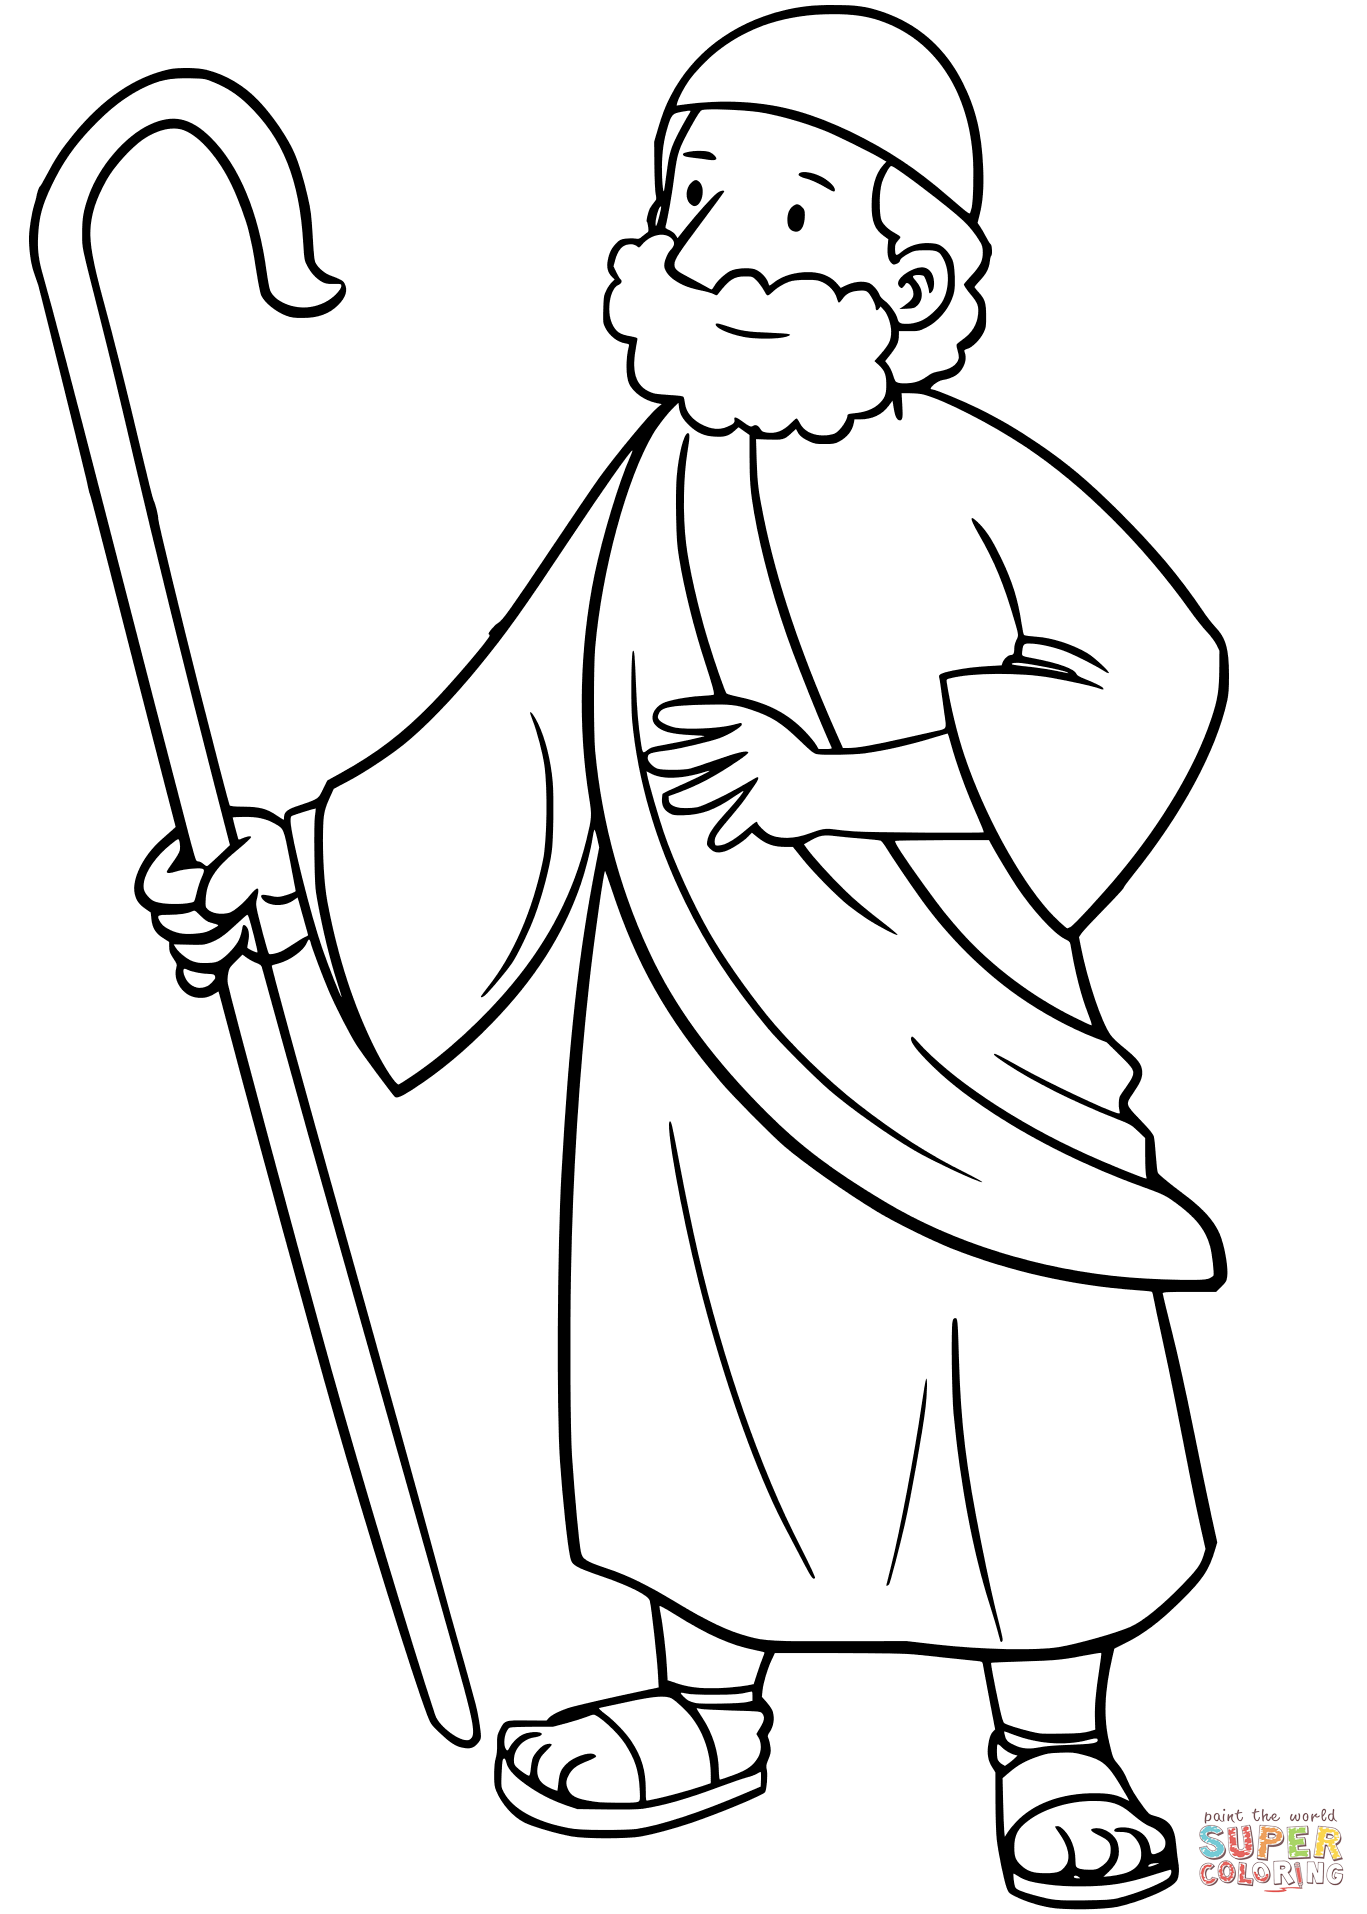 free printable moses coloring pages baby moses coloring page coloring home coloring free pages printable moses